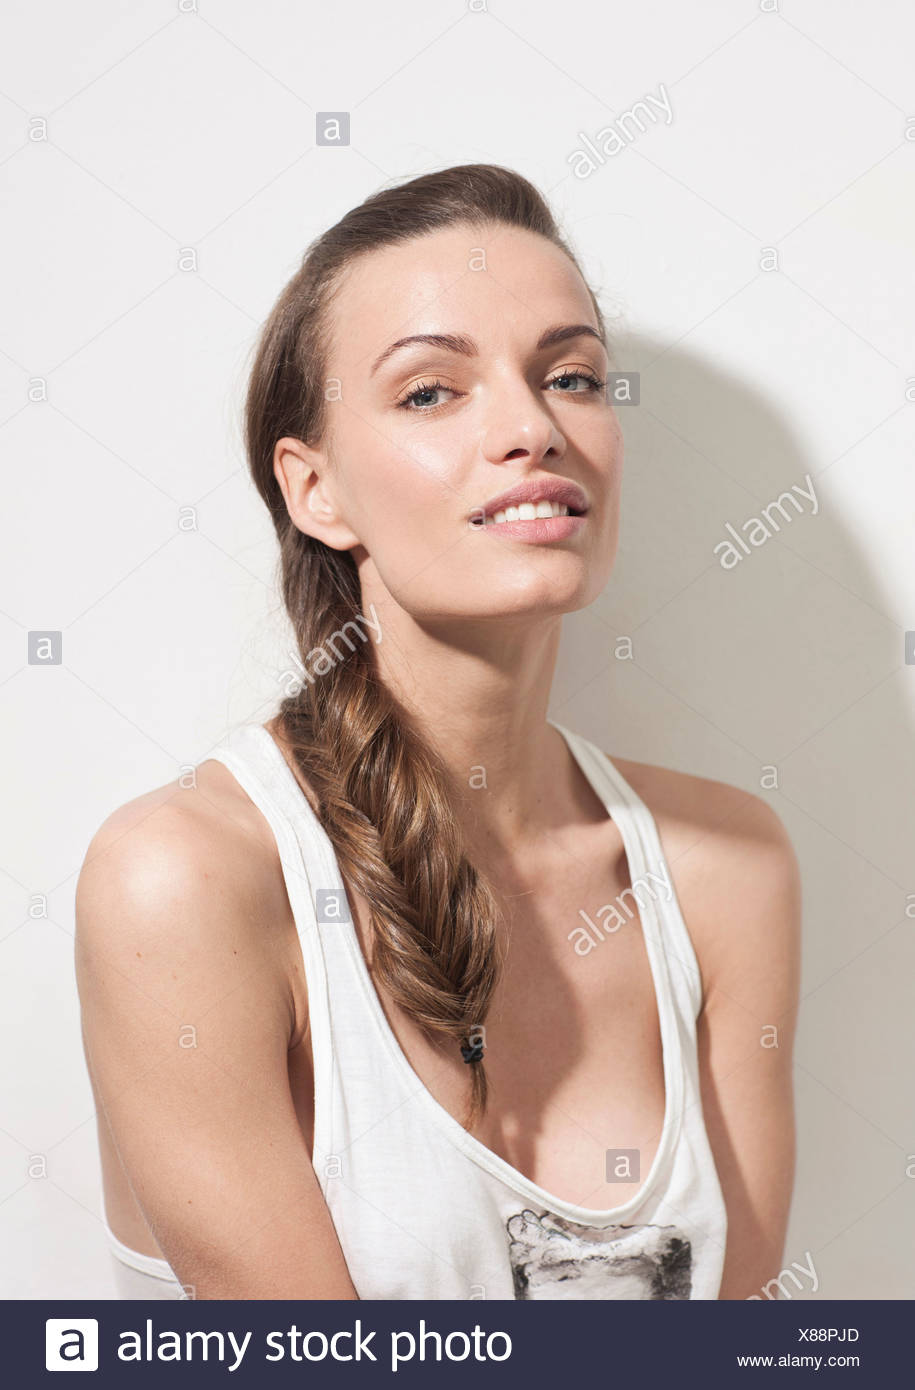 Young woman wearing vest and smiling, portrait - Stock Image